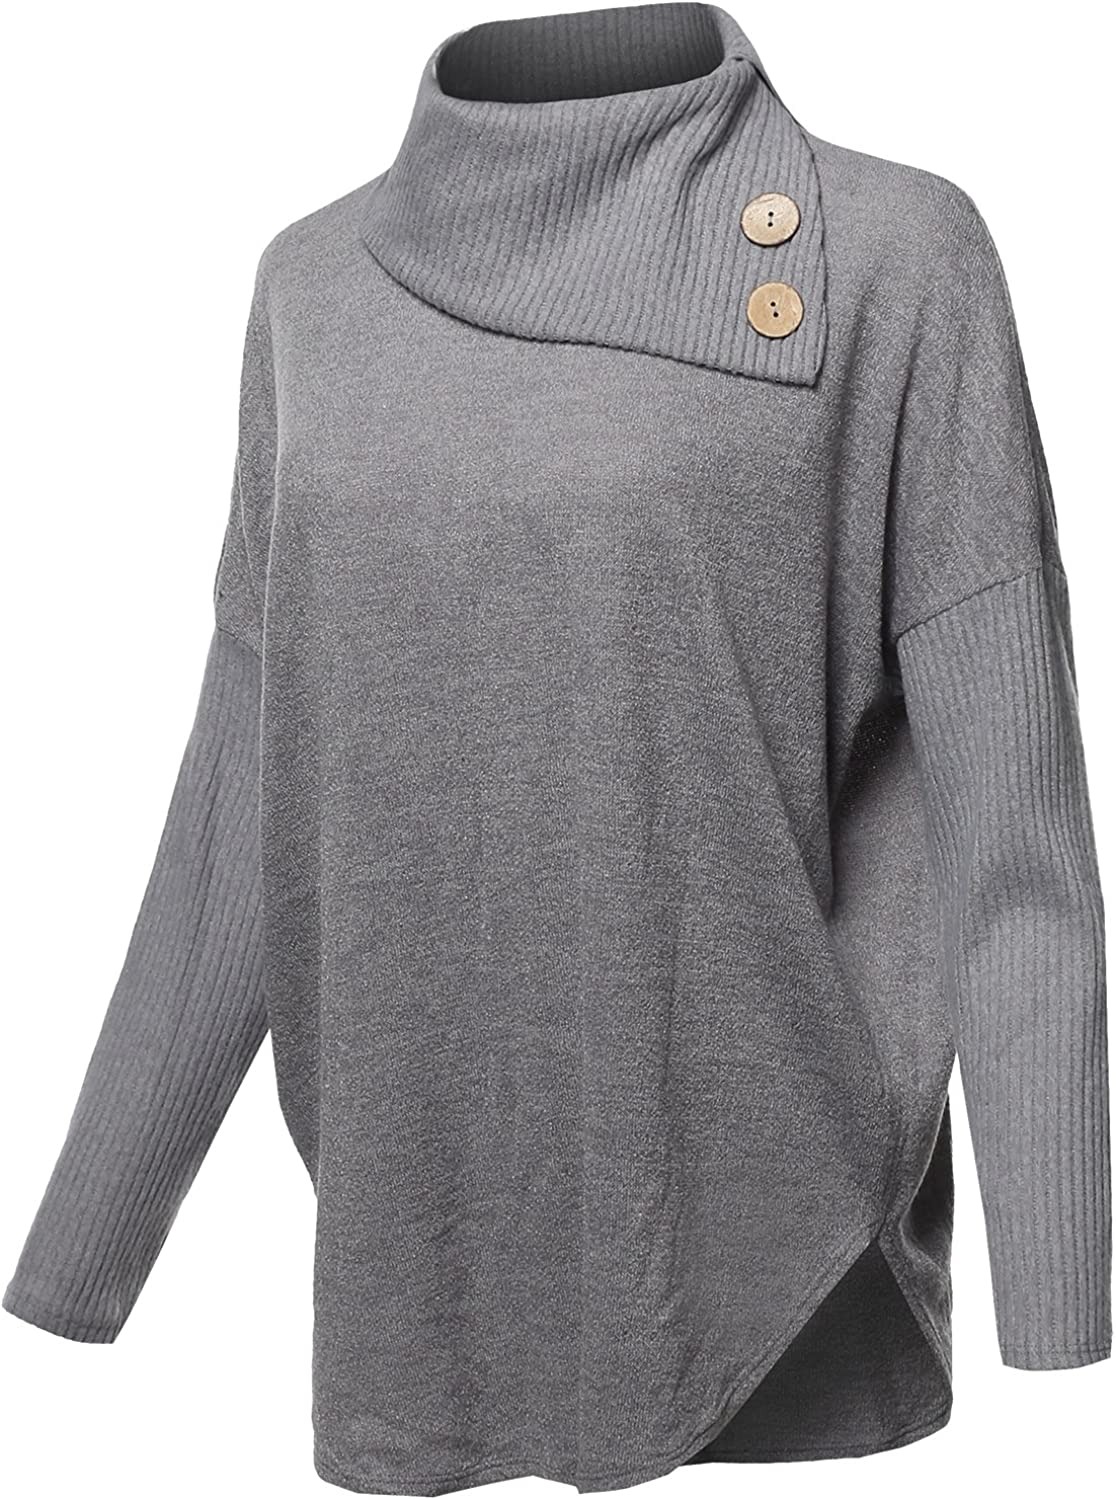 Womens Casual Loose Fit Drop Shoulder Cowl Neck Sweater Made in USA